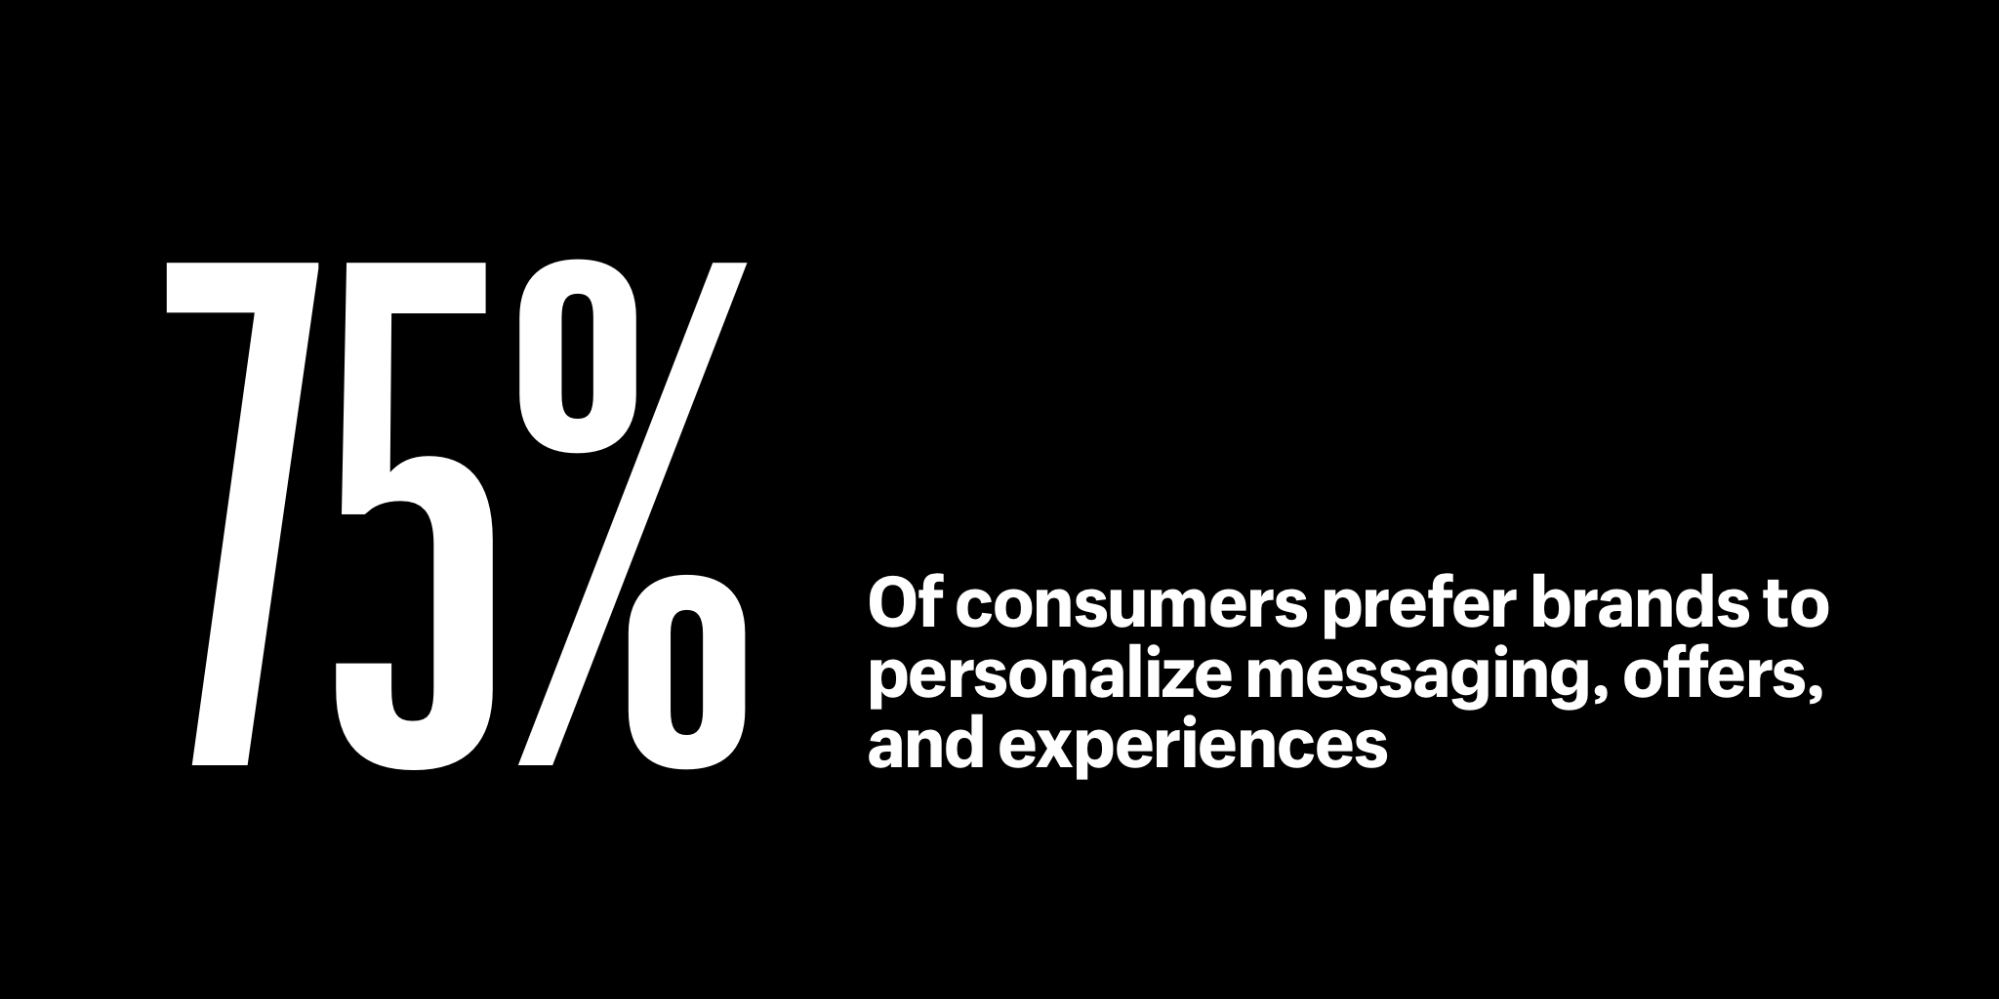 75% of consumers prefer brands to personalize messaging, offers, and experiences